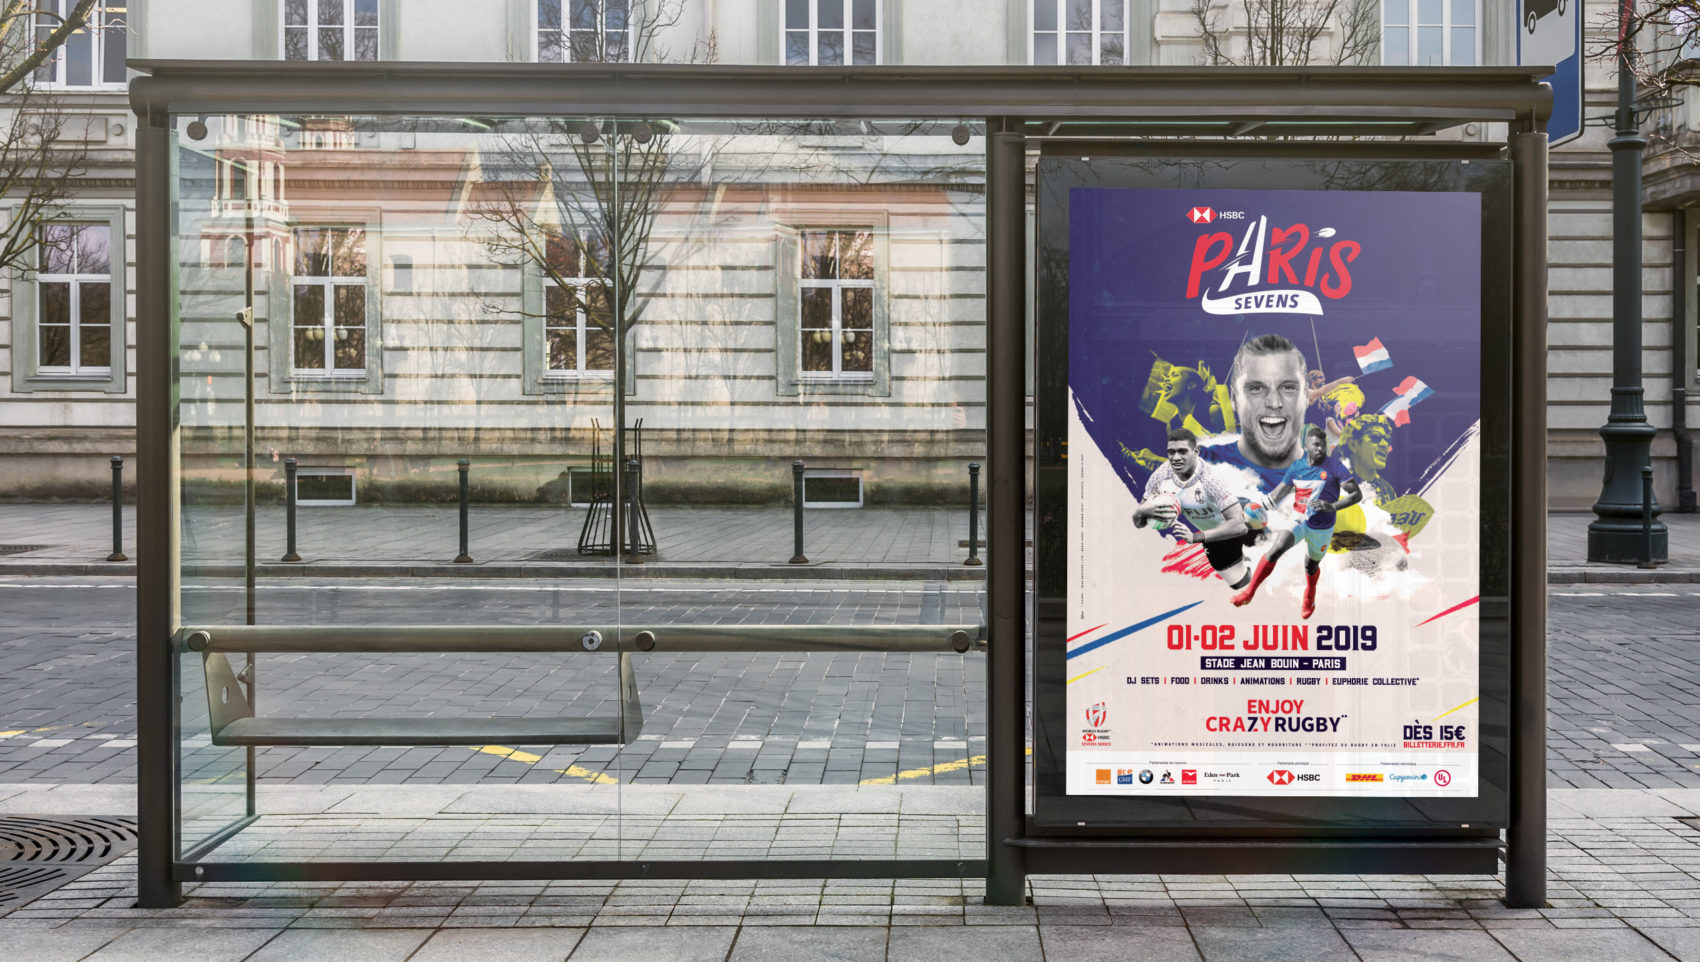 Projet_visuel_2_Federation_Francaise_Rugby_Paris_Biarritz_sevens_french_rugby